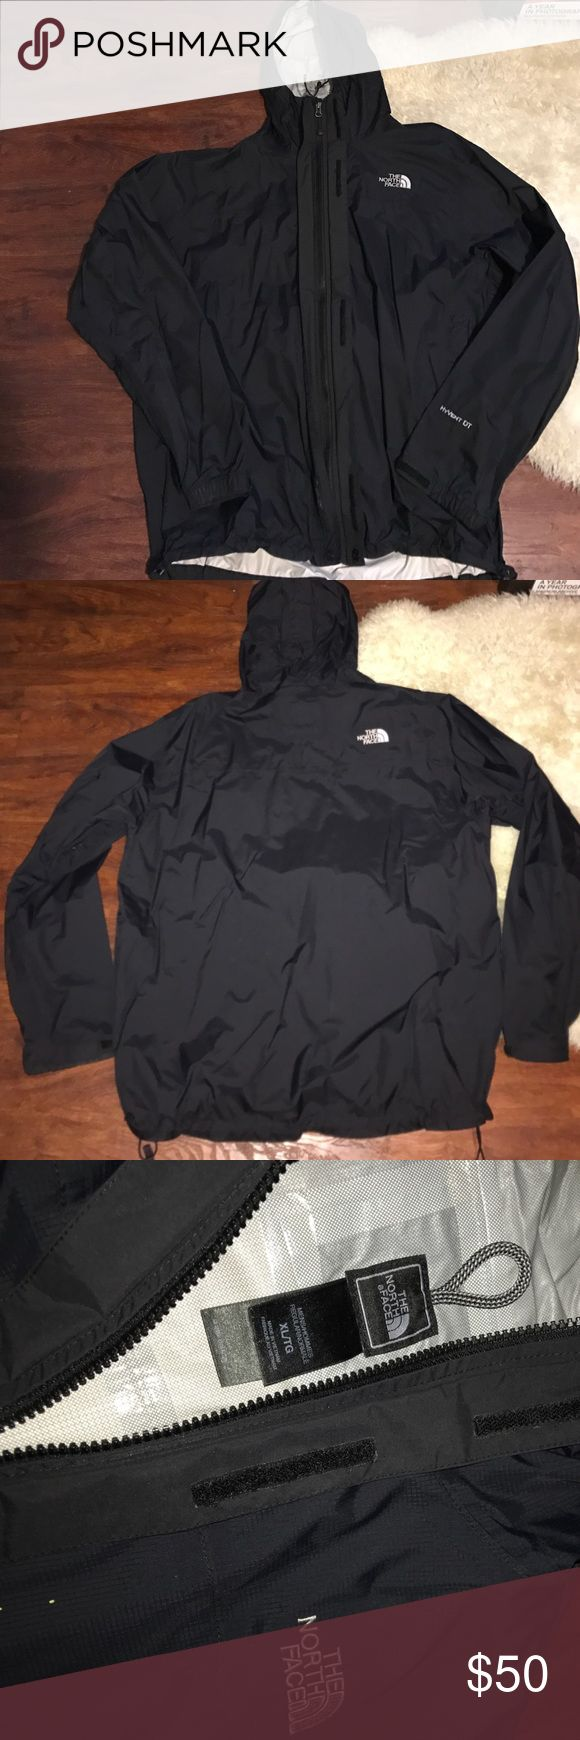 Men's North Face windbreaker XL Worn lightly. In great condition. No stains or marks or tears. 100% authentic. The North Face Jackets & Coats